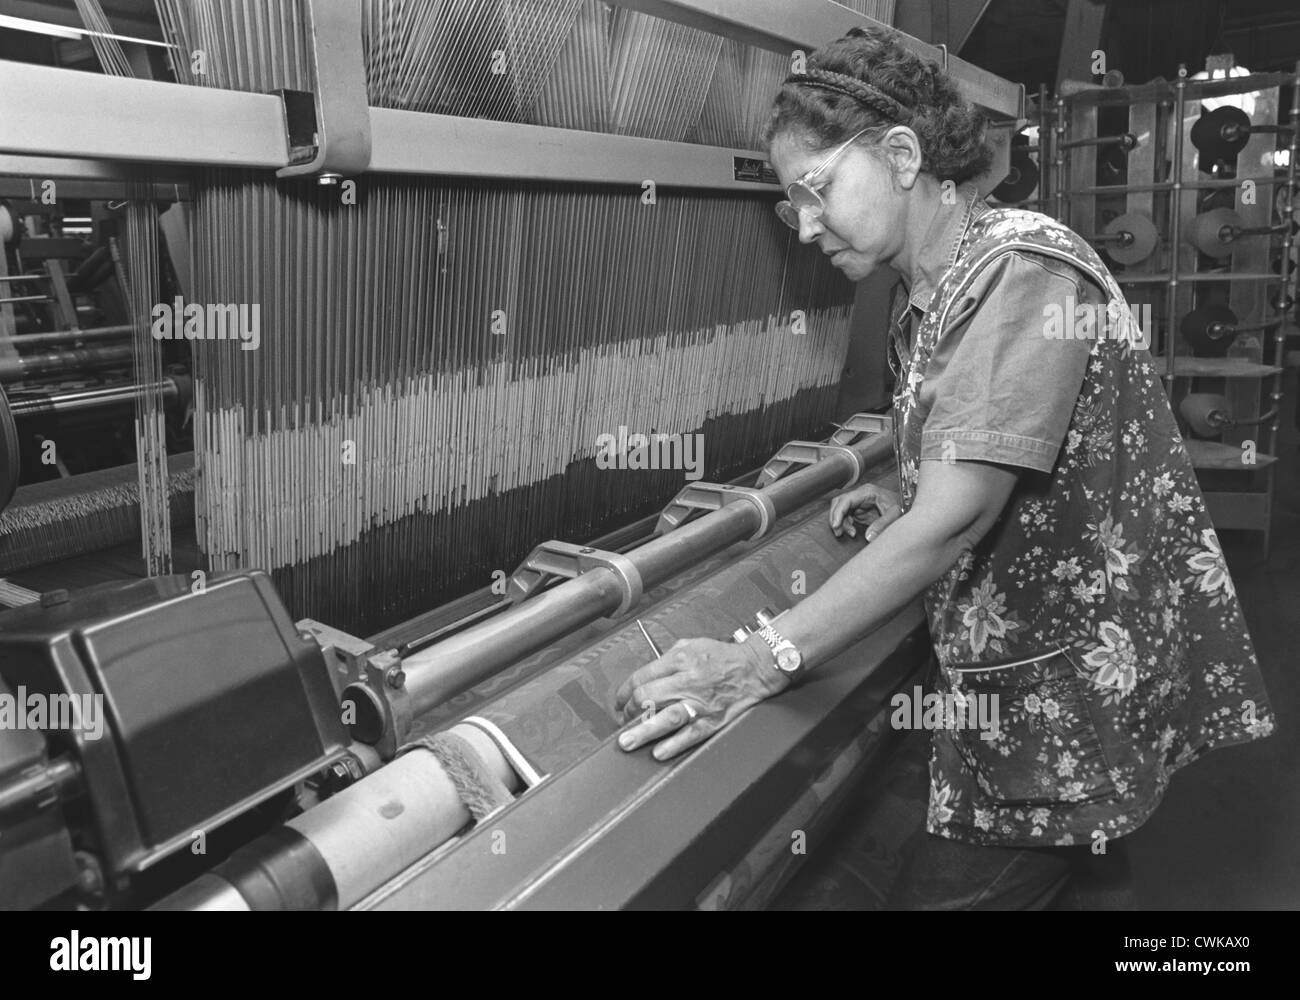 A woman, textile worker, working with her hands in a clothing and fabric factory. - Stock Image